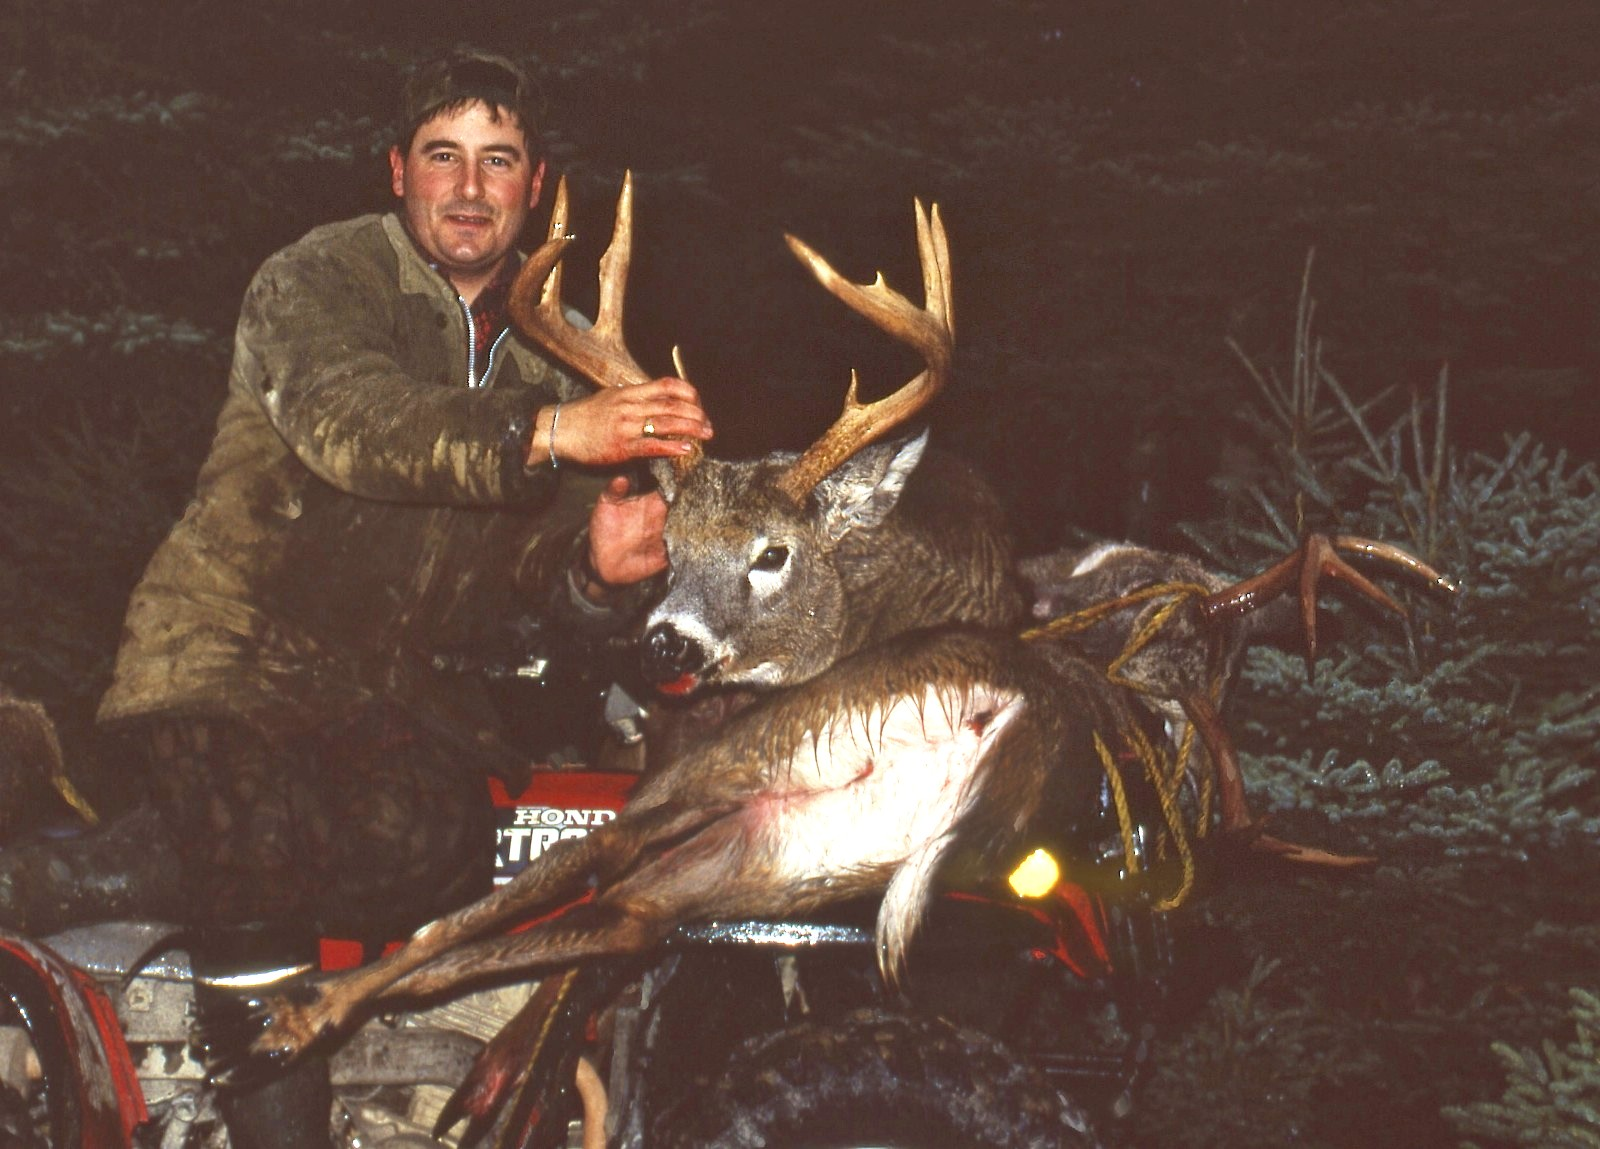 chasse hunters video